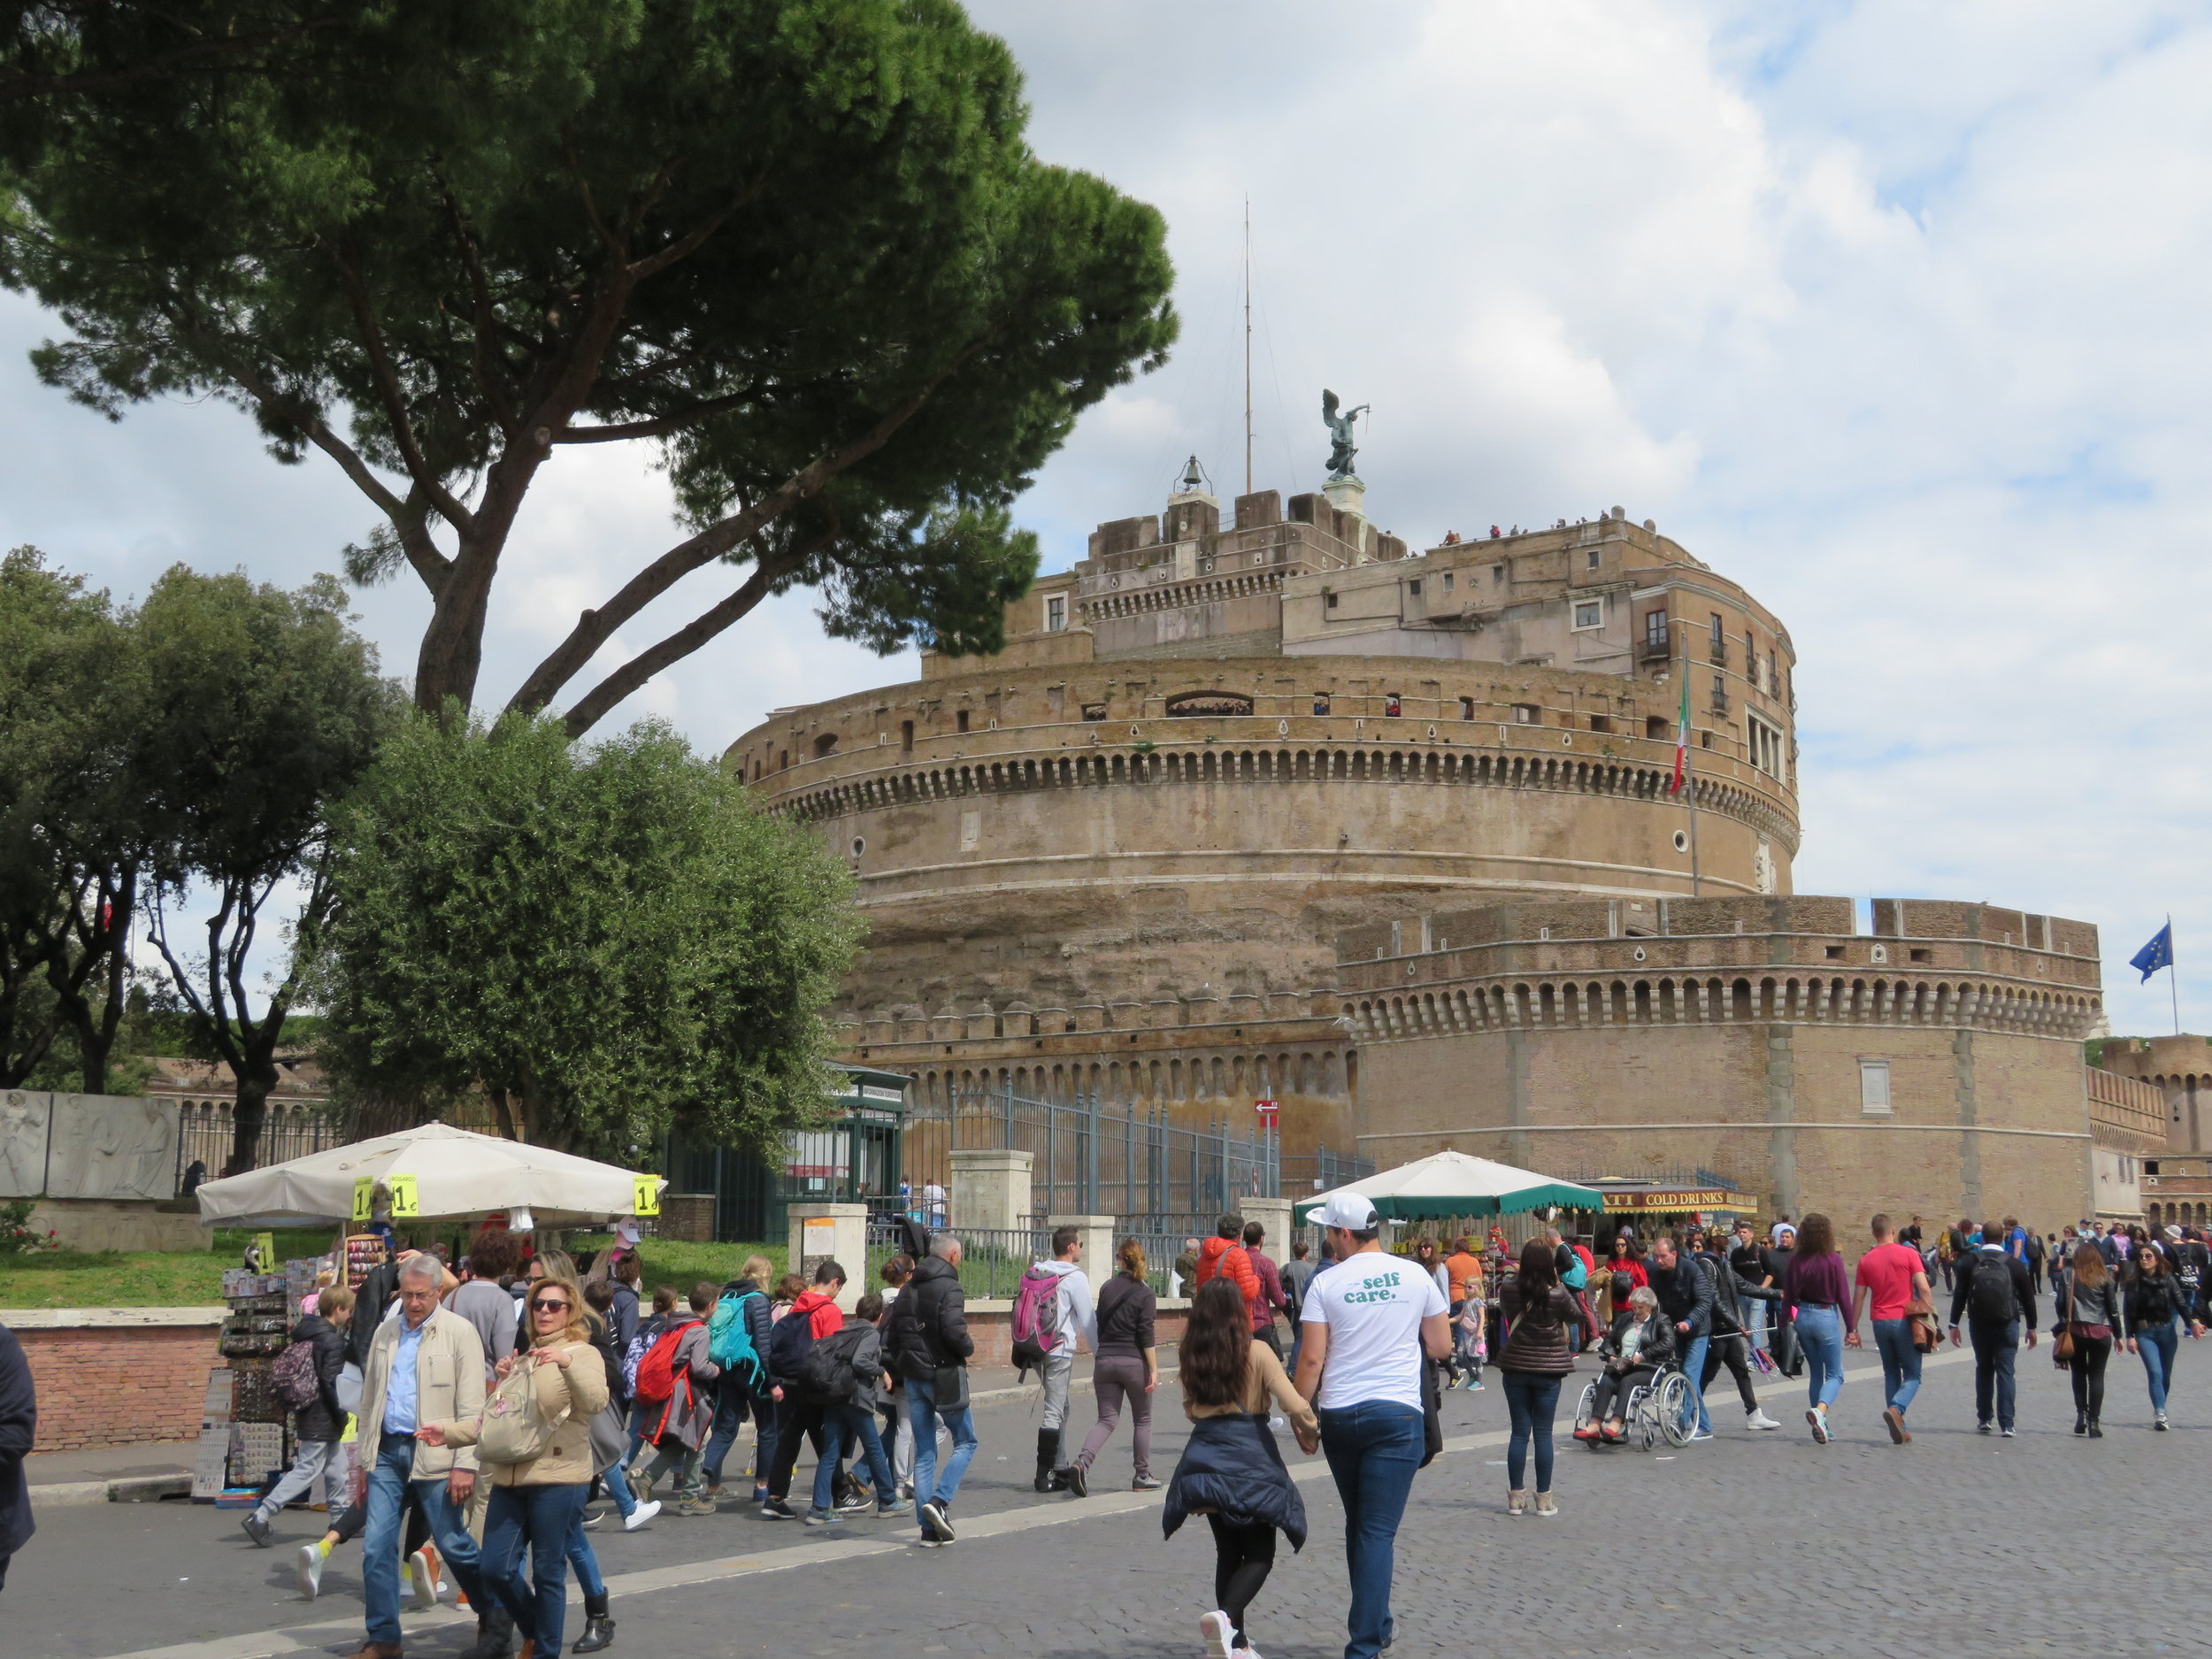 We headed back to the city for lunch, passing by the Castel Sant'Angelo, the fortress that protected the city in past centuries.